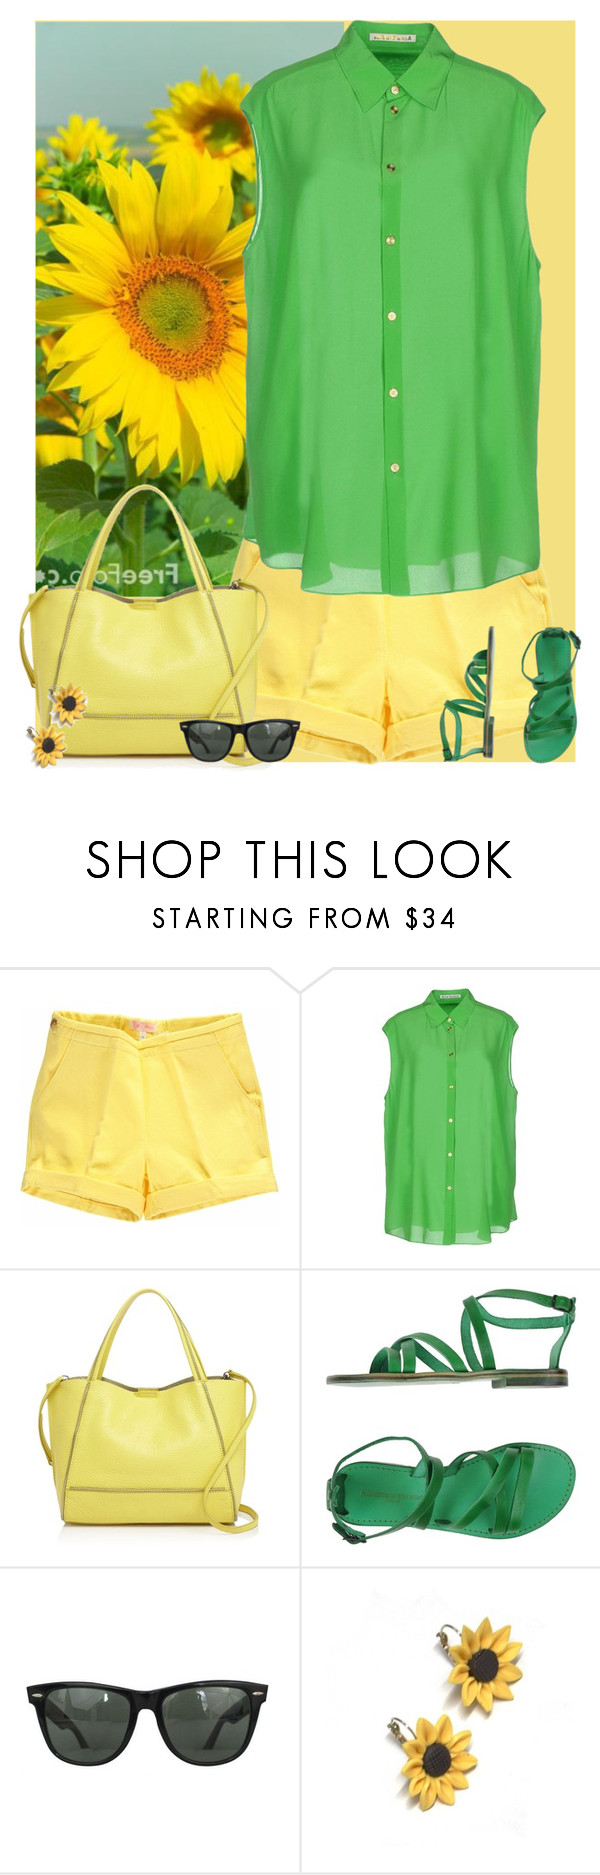 """""""Bez naslova #3024"""" by gita016 ❤ liked on Polyvore featuring Acne Studios, Botkier, L'Artigiano del Cuoio, Ray-Ban and Summer and Silver"""